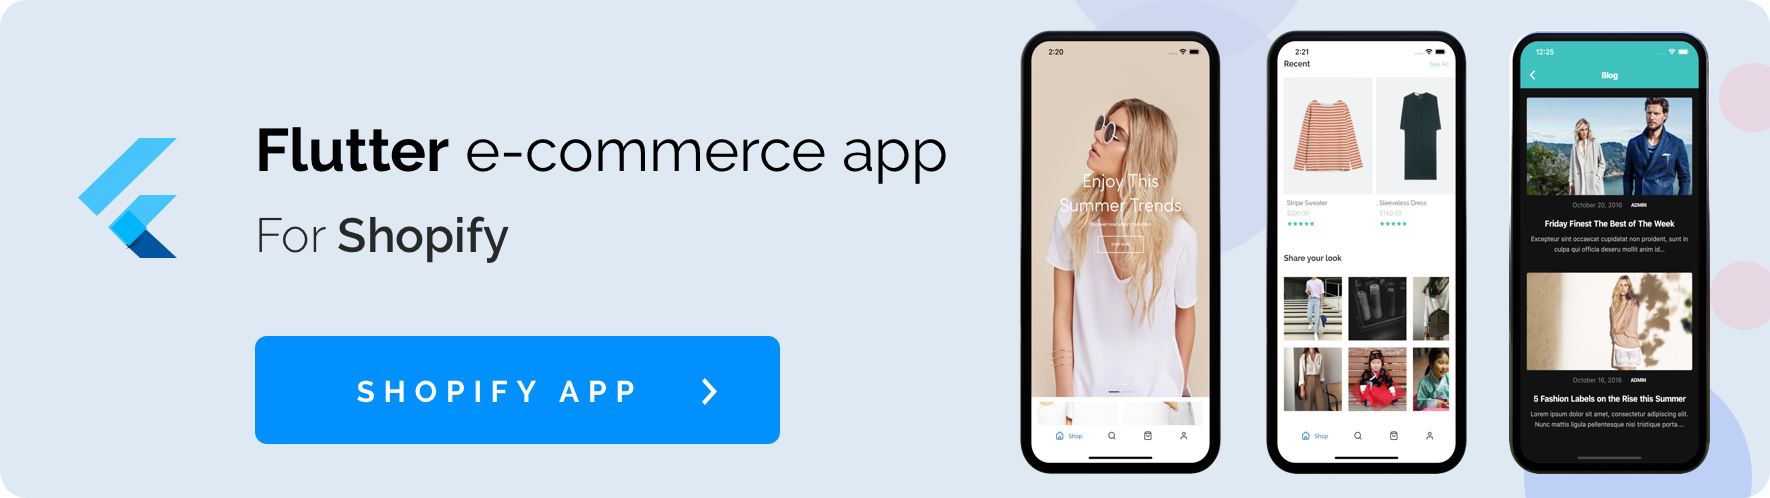 MStore Pro - Complete React Native template for e-commerce - 37